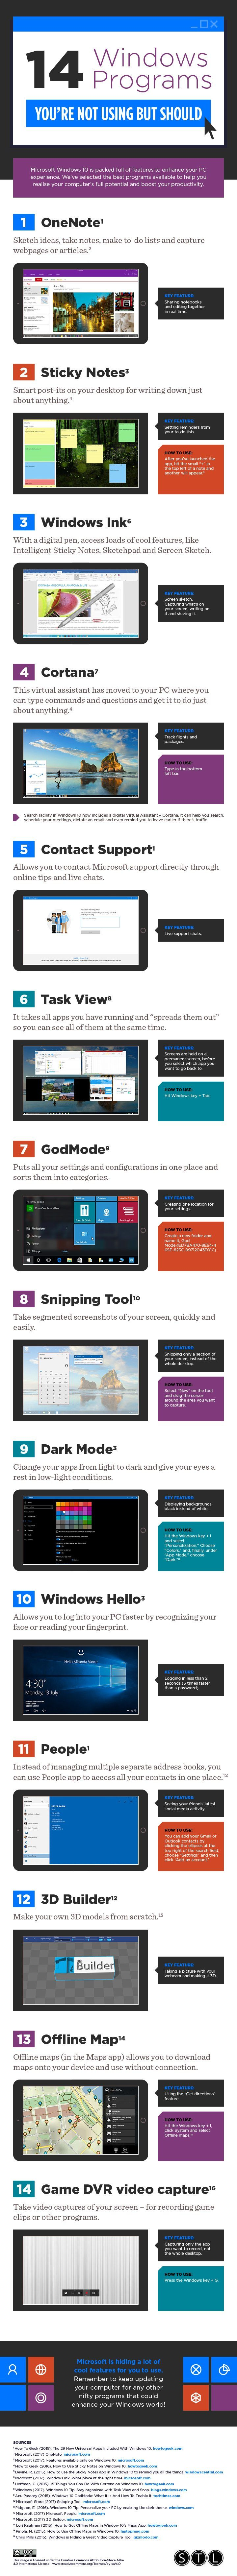 14 Microsoft Programs You're Not Using But Should (infographic) / Digital Information World